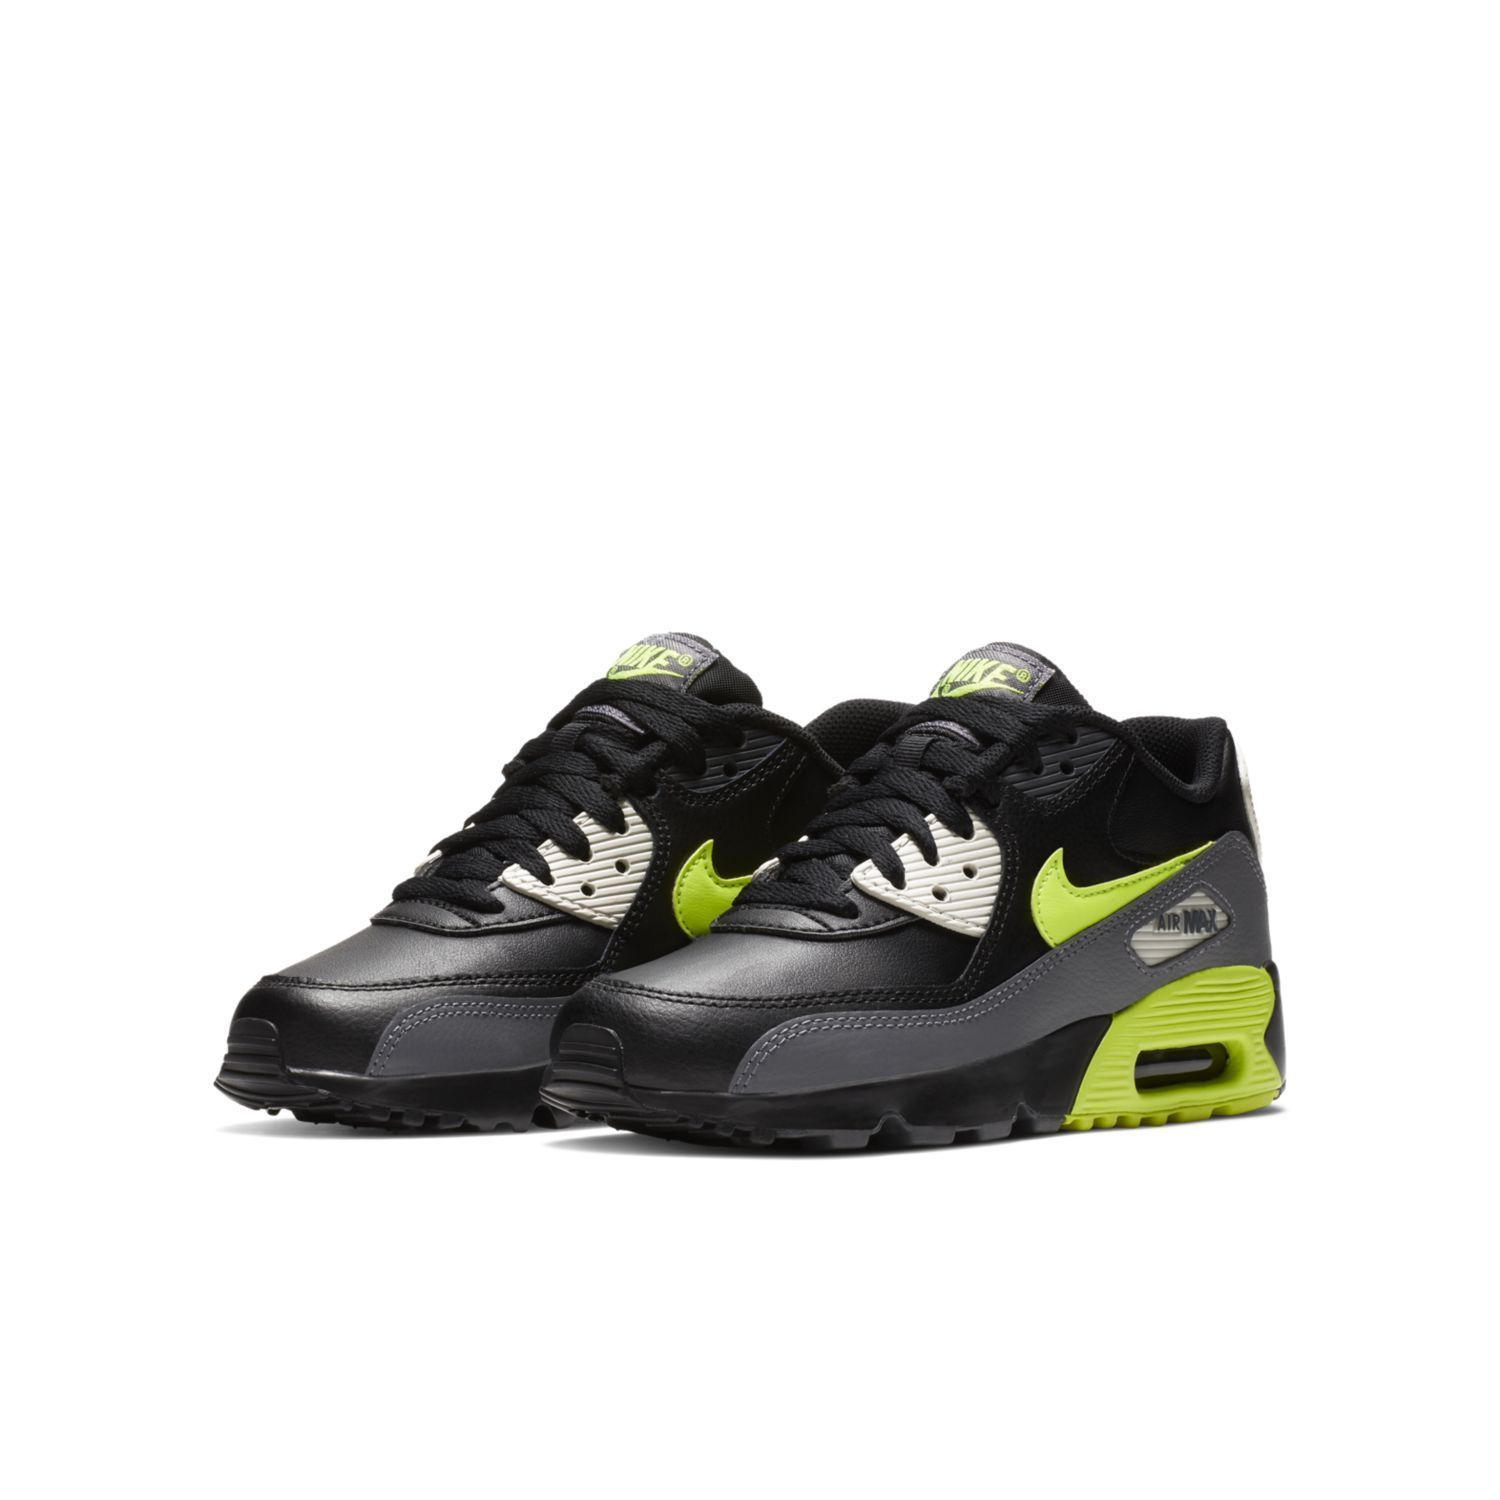 info for af3ec 58287 Nike Air Max 90 Ltr (Gs) Big Kids Us Size 6 and 28 similar items. S l1600